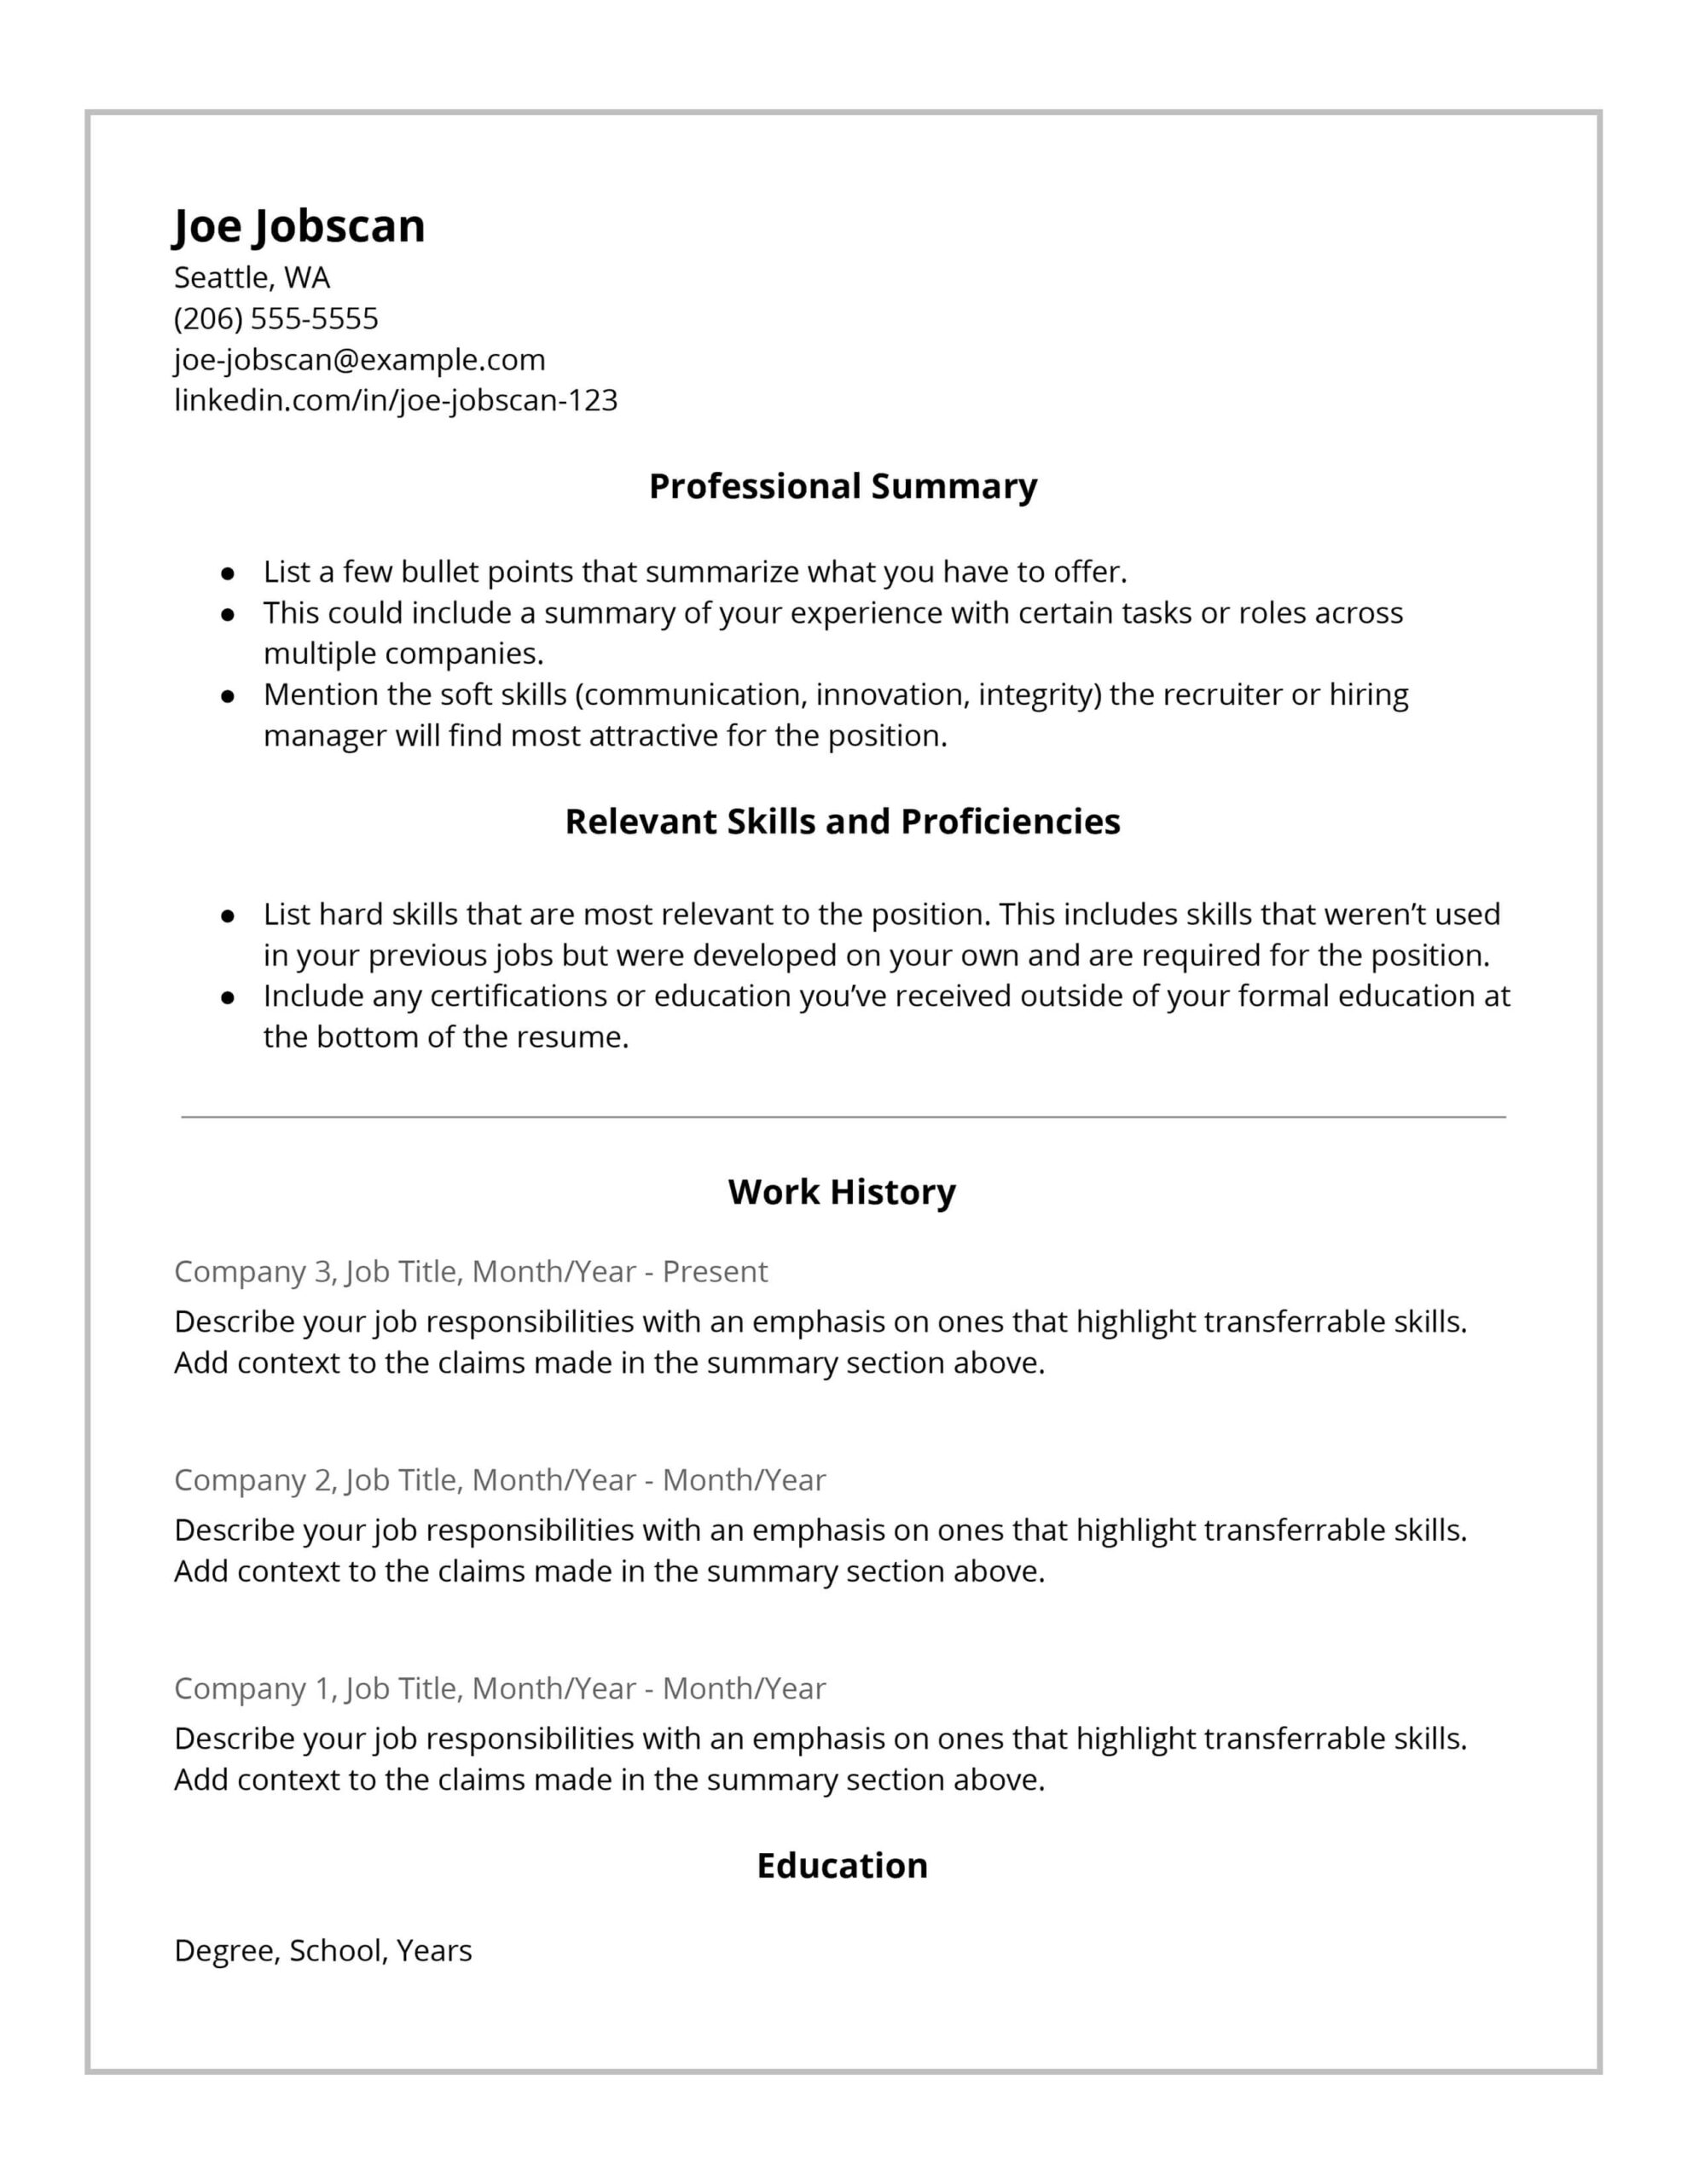 recruiters hate the functional resume format here sample template hybrid high school Resume Sample Functional Resume Template